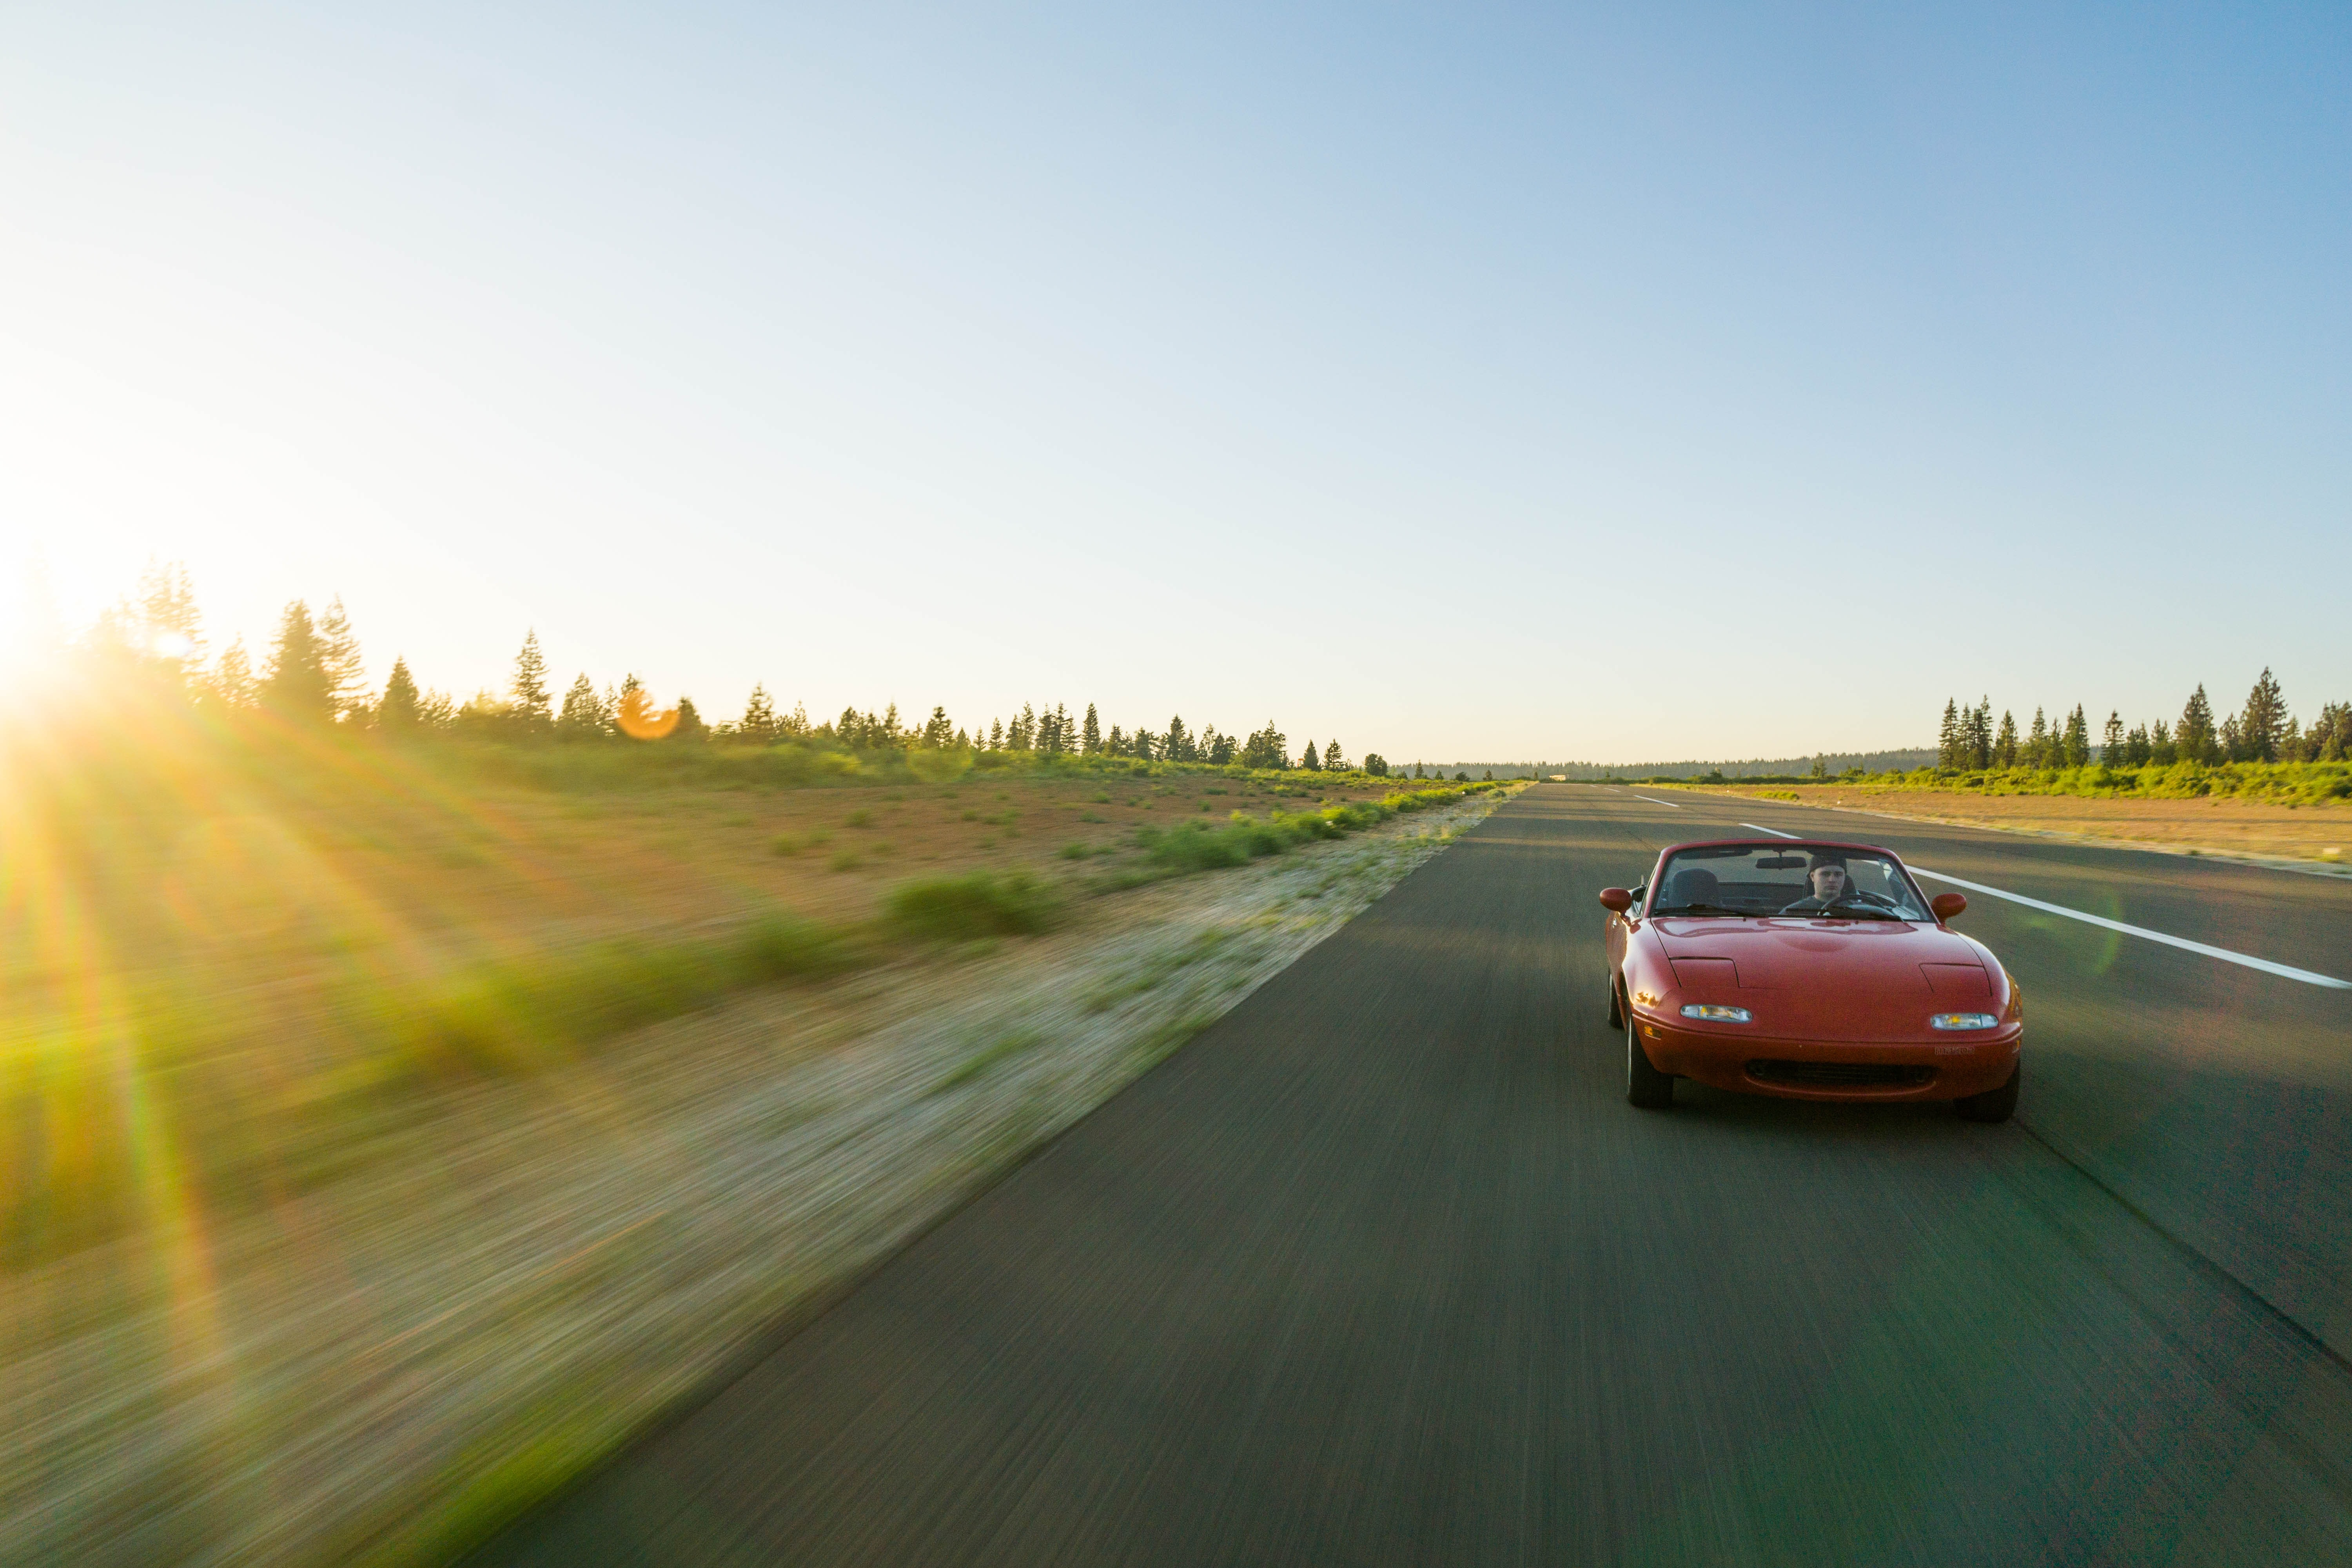 panning photography of red Mazda MX-5 Miata